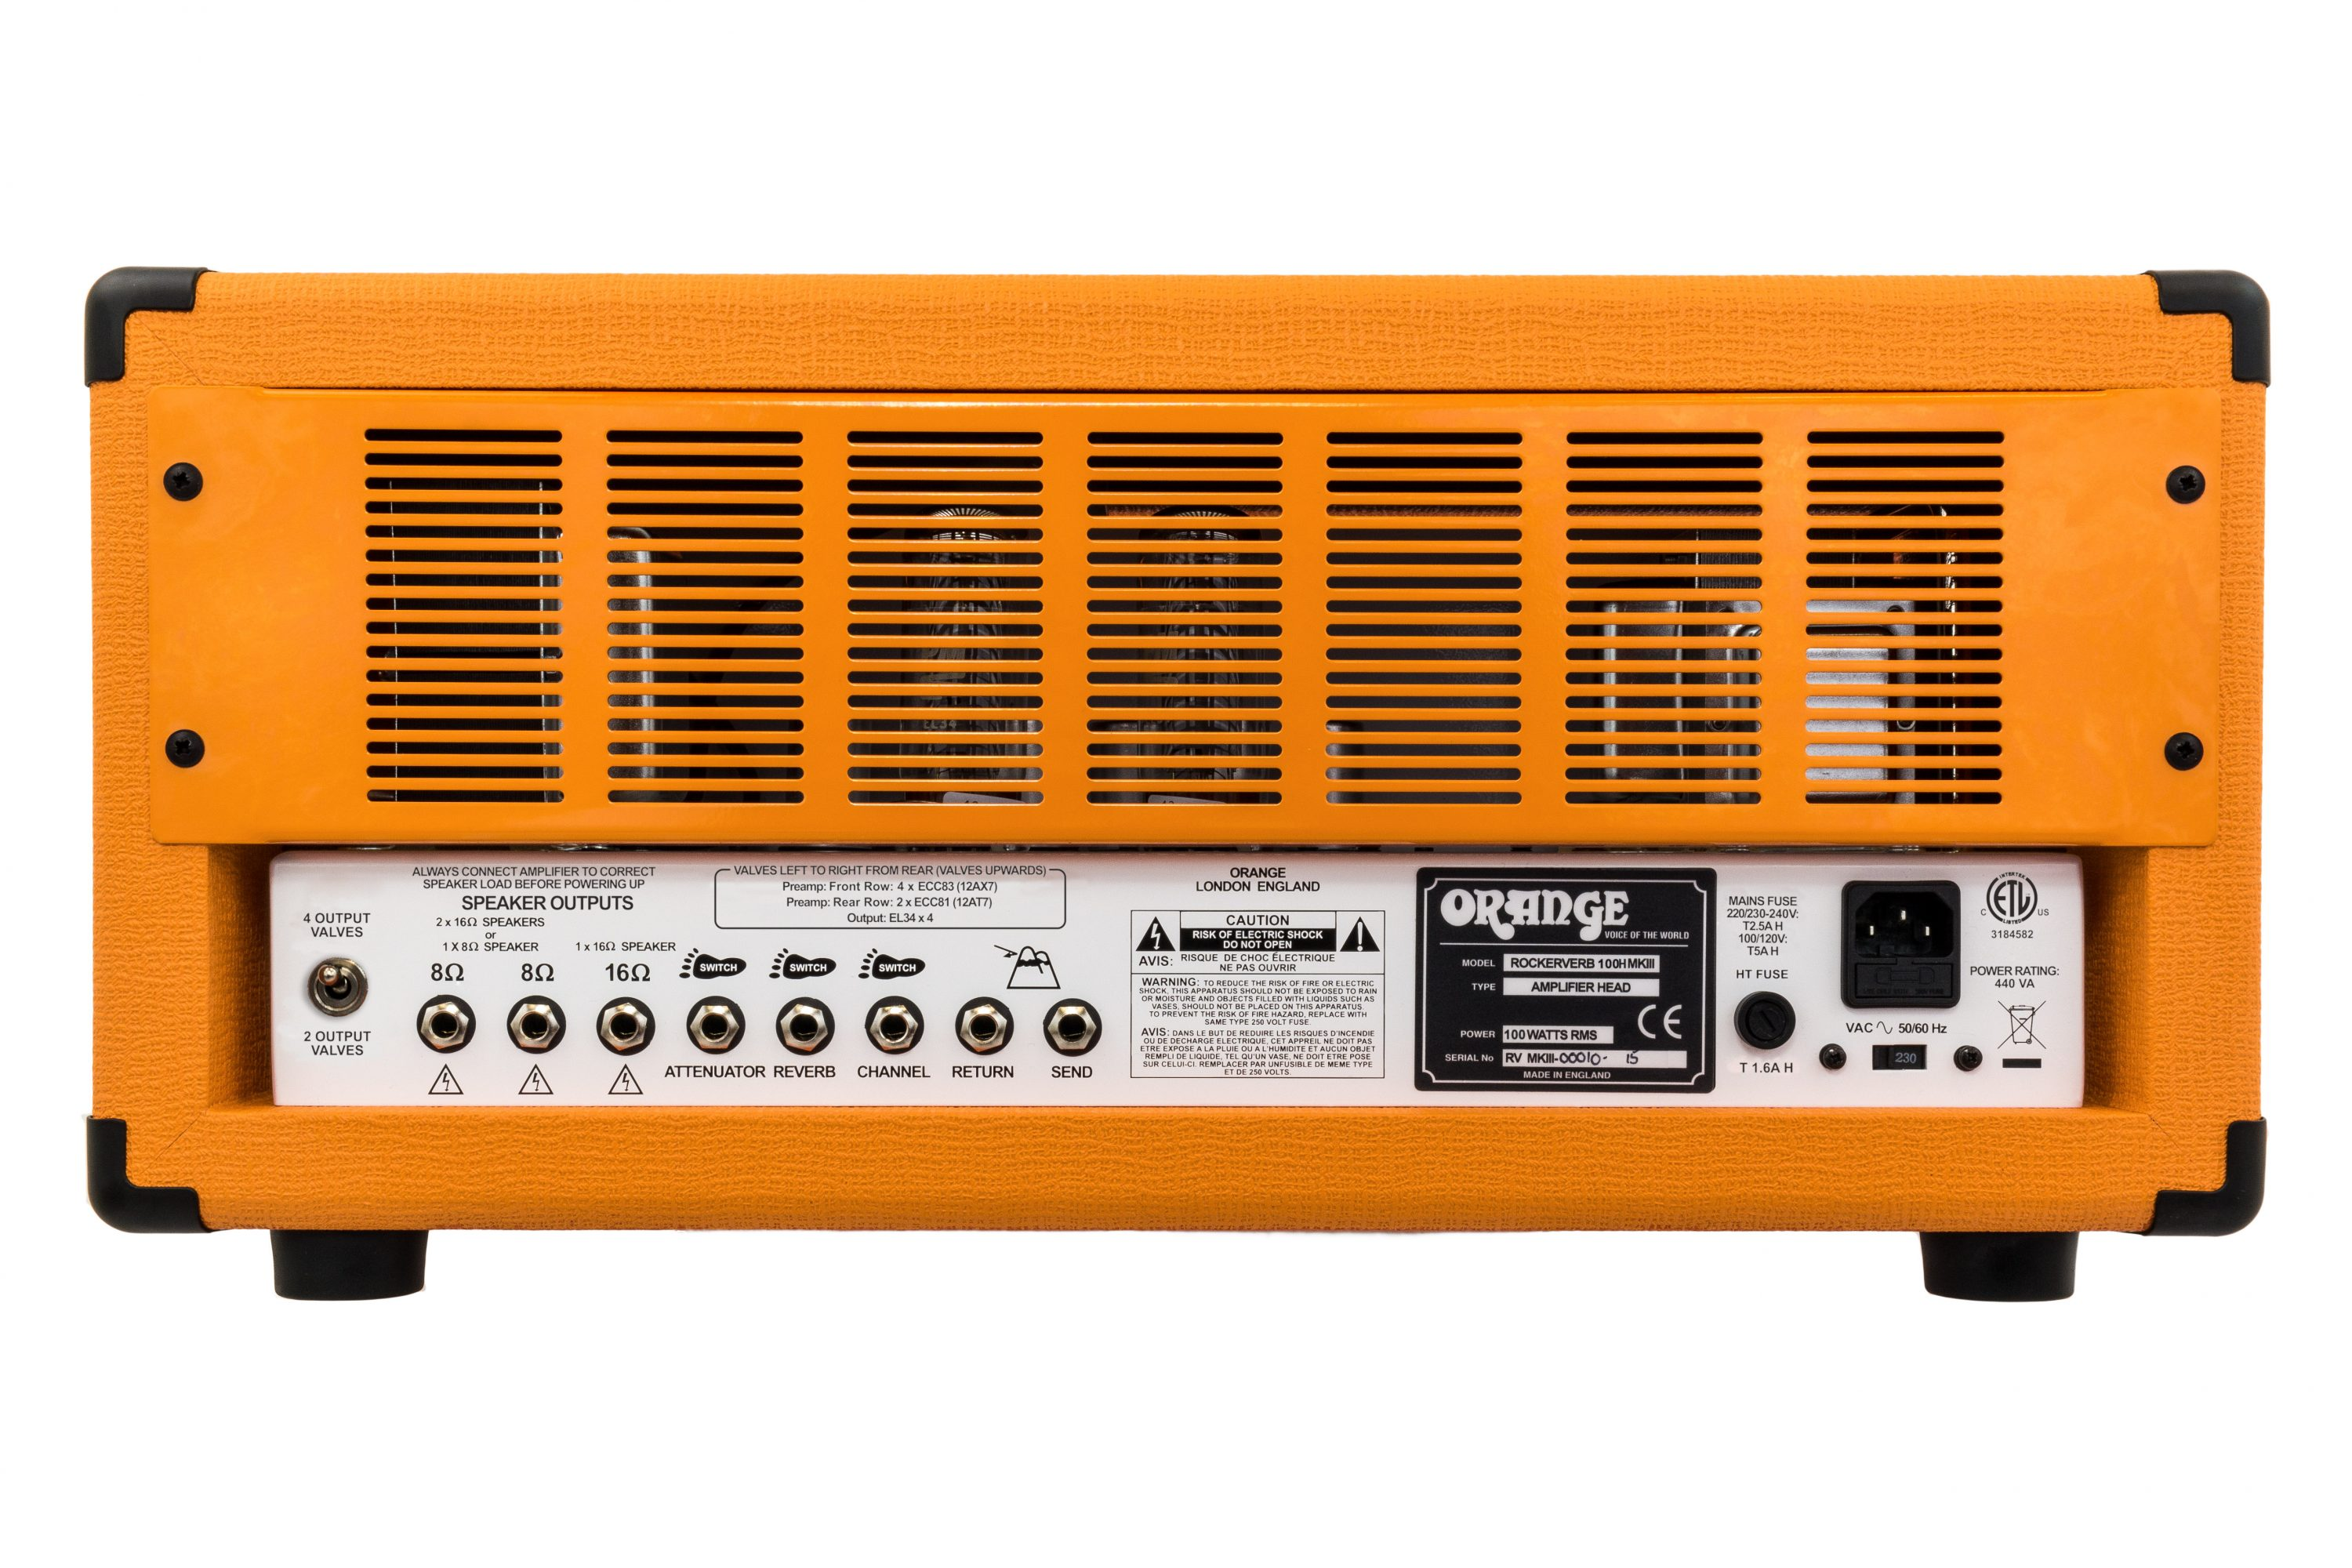 Rockerverb Mkiii Series Manual Orange Amps 3 Way Switch Wiring Diagram For Amp Standby 1